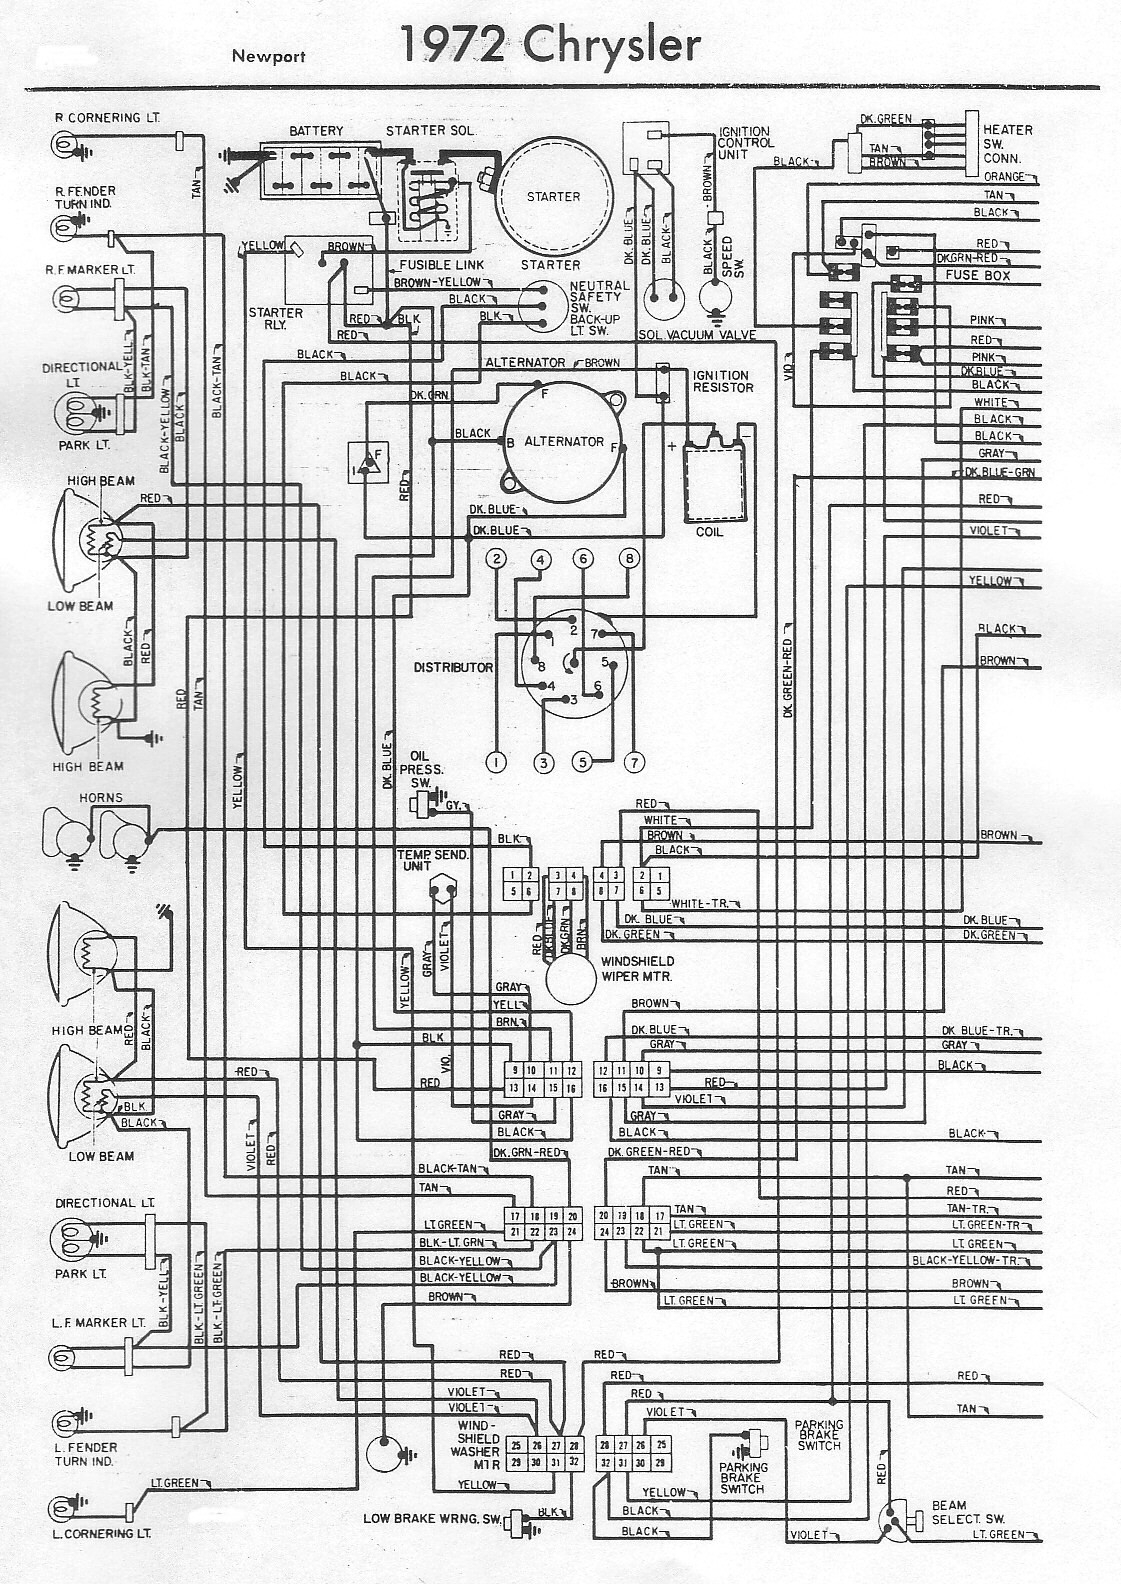 1972 Chrysler Newport Electrical Wiring Diagram | All about Wiring Diagrams